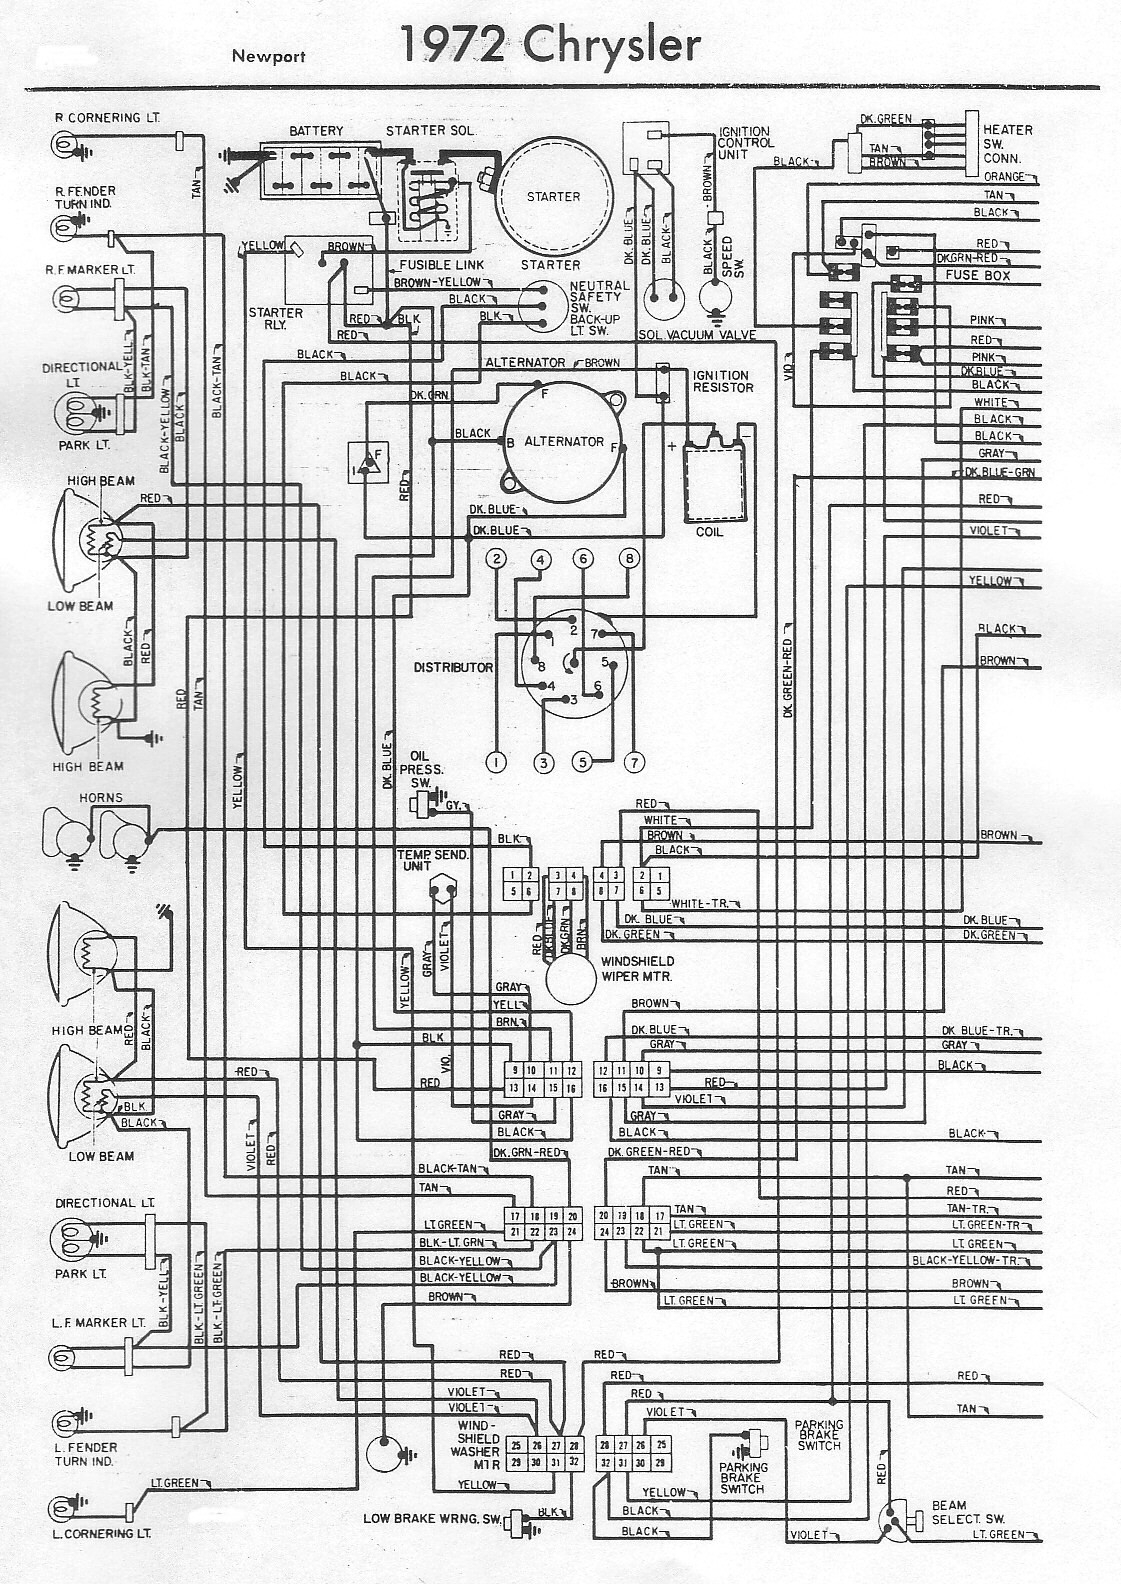 1972 Chrysler Newport Electrical Wiring Diagram | All about Wiring Diagrams